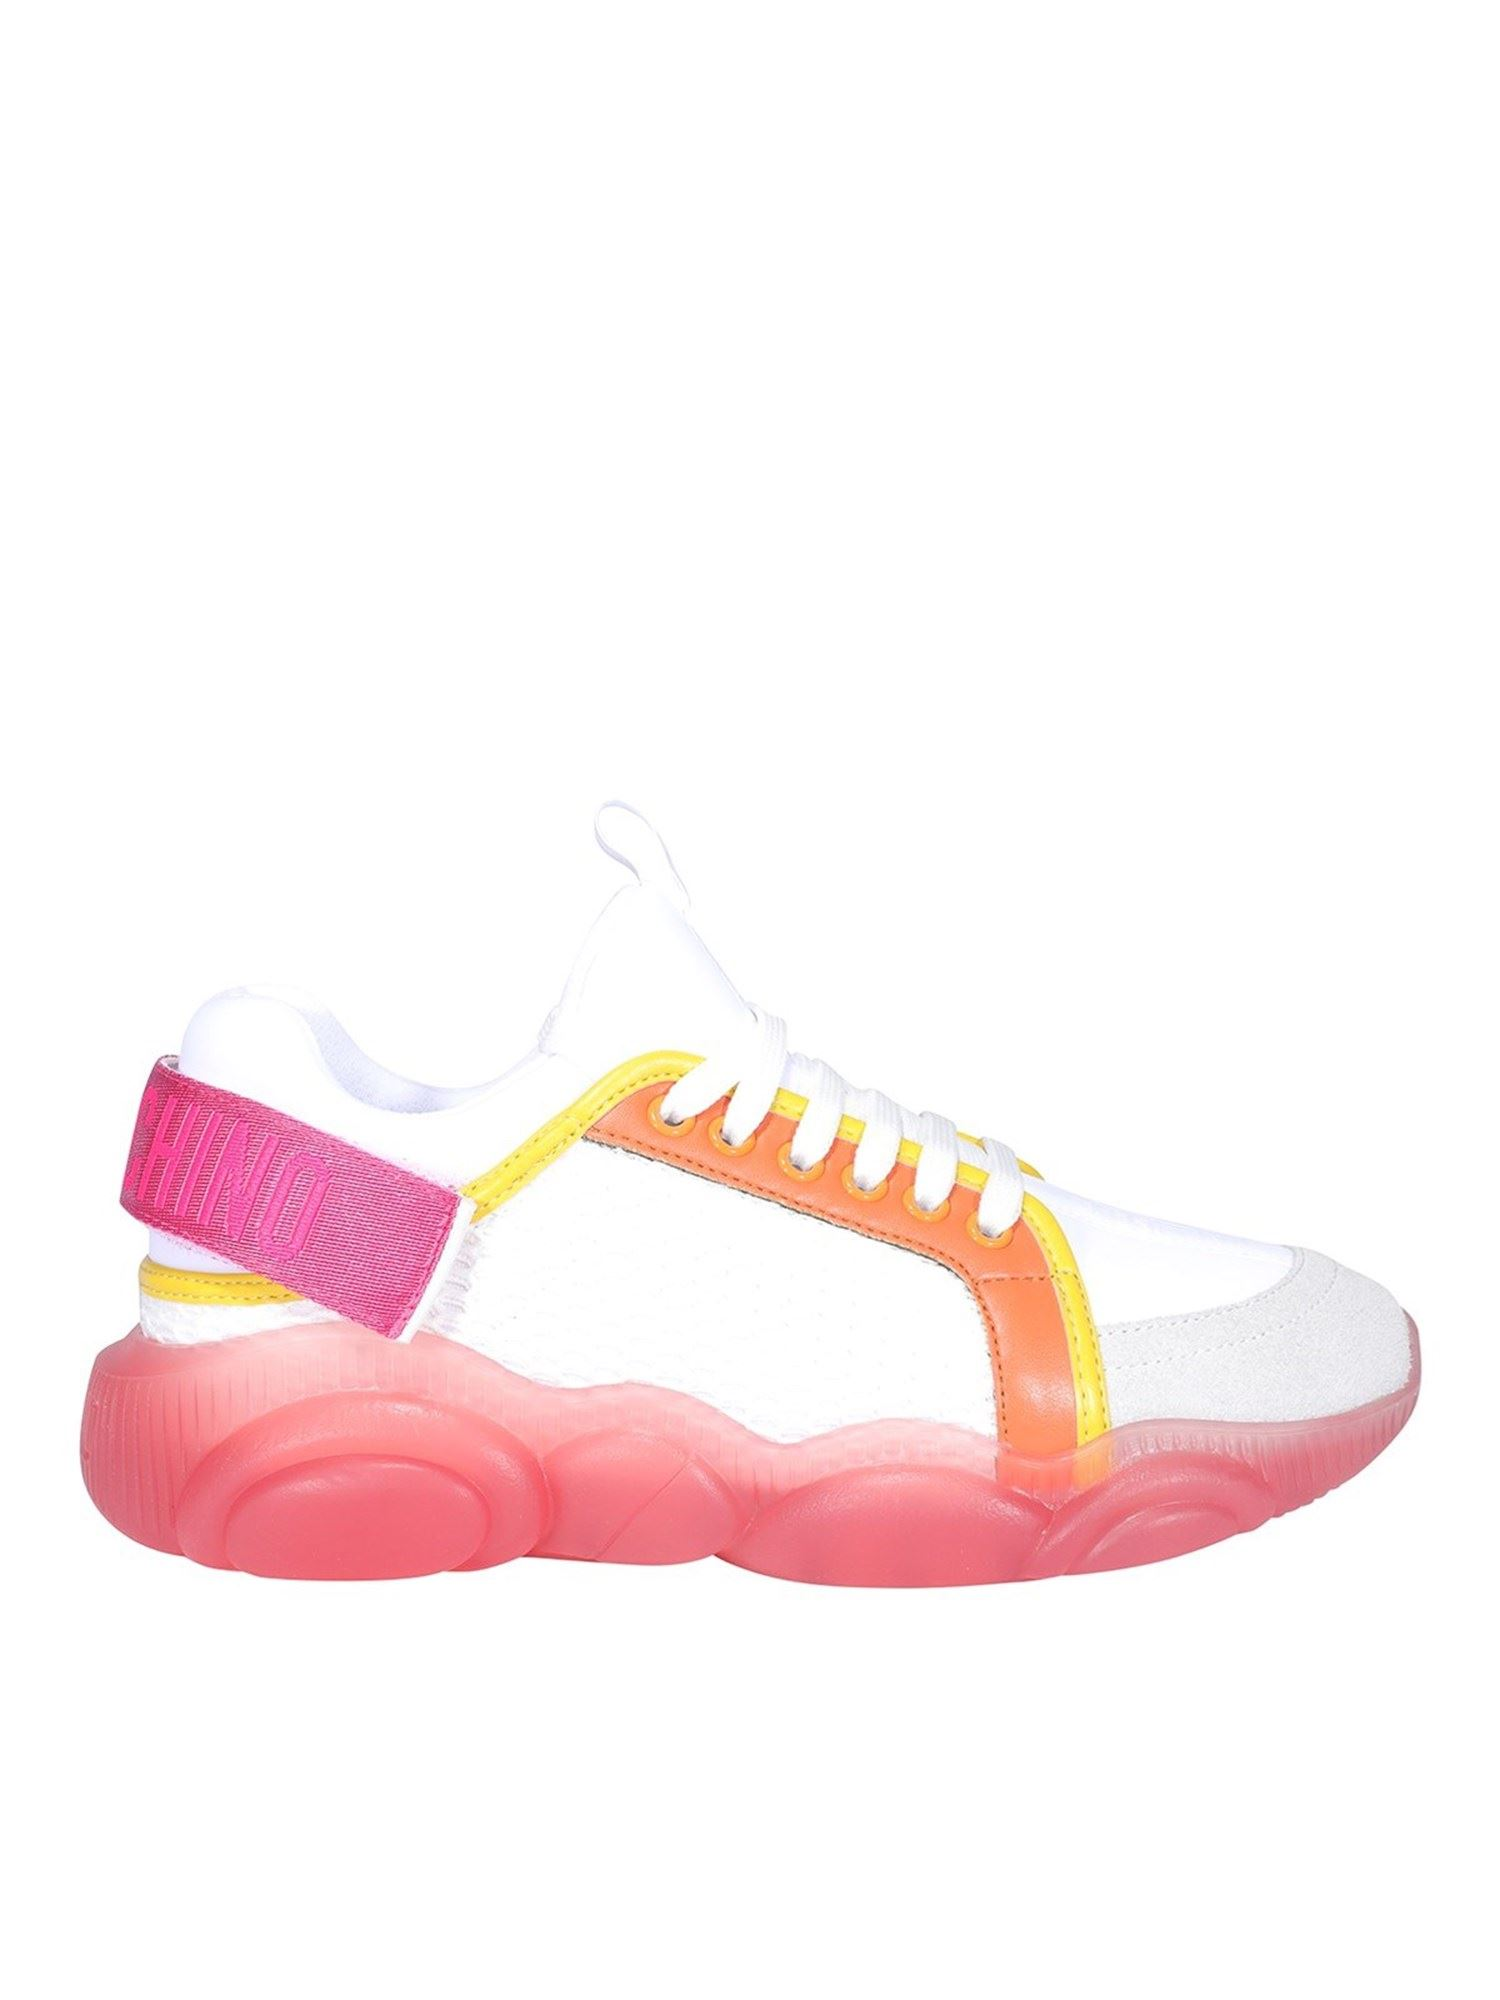 Moschino Leathers TEDDY WHITE AND PINK SNEAKERS